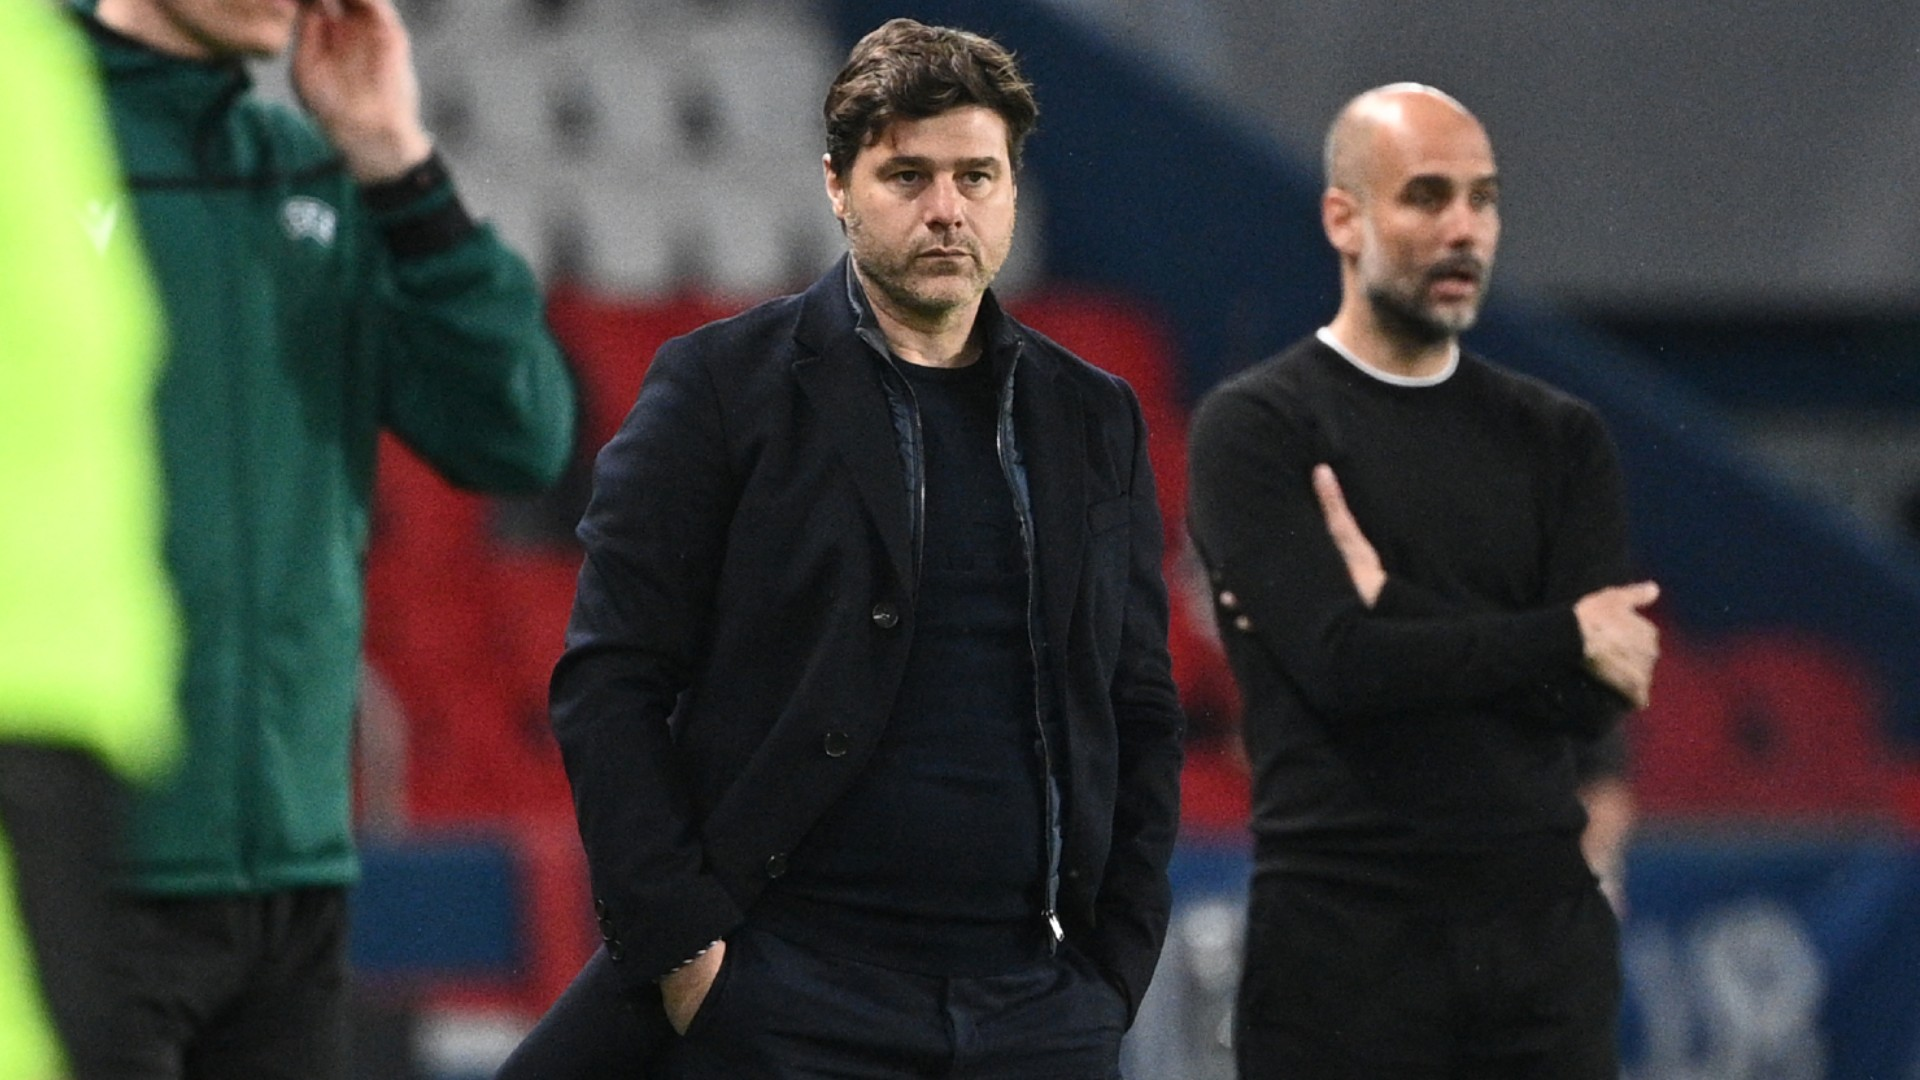 PSG loss difficult to accept – Pochettino on 'painful' collapse against Man City